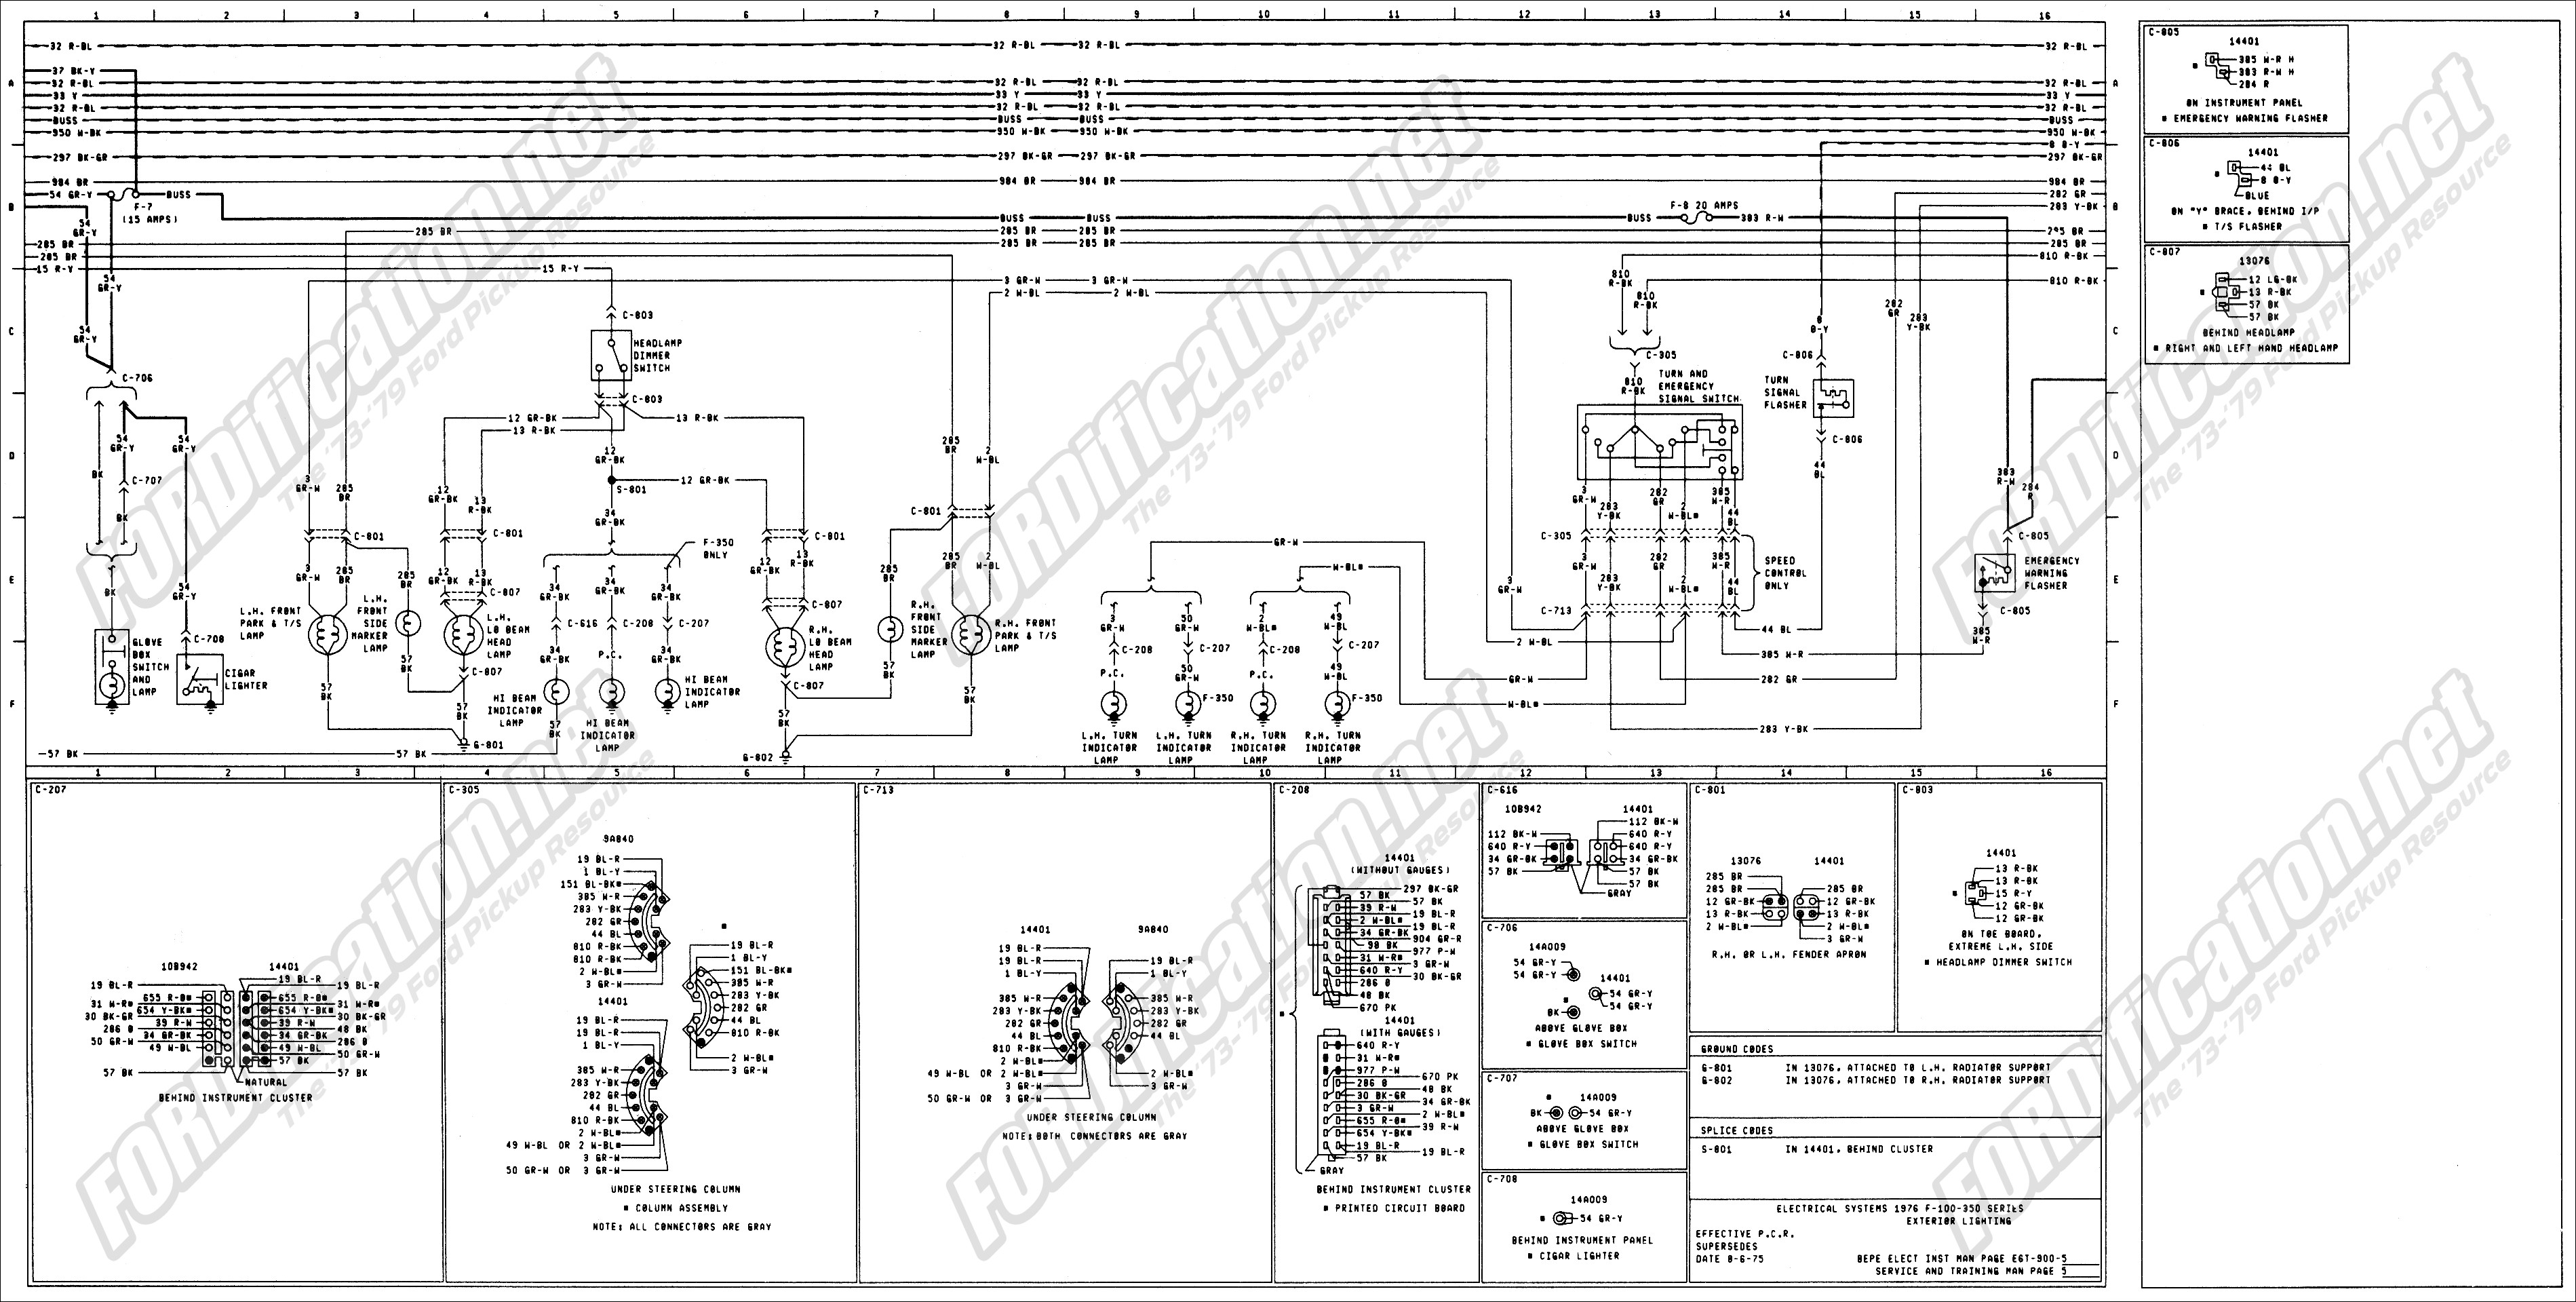 1973 1979 ford truck wiring diagrams schematics fordification net rh  fordification net 2007 F250 Wiring Diagram 1977 ford f250 wiring diagram